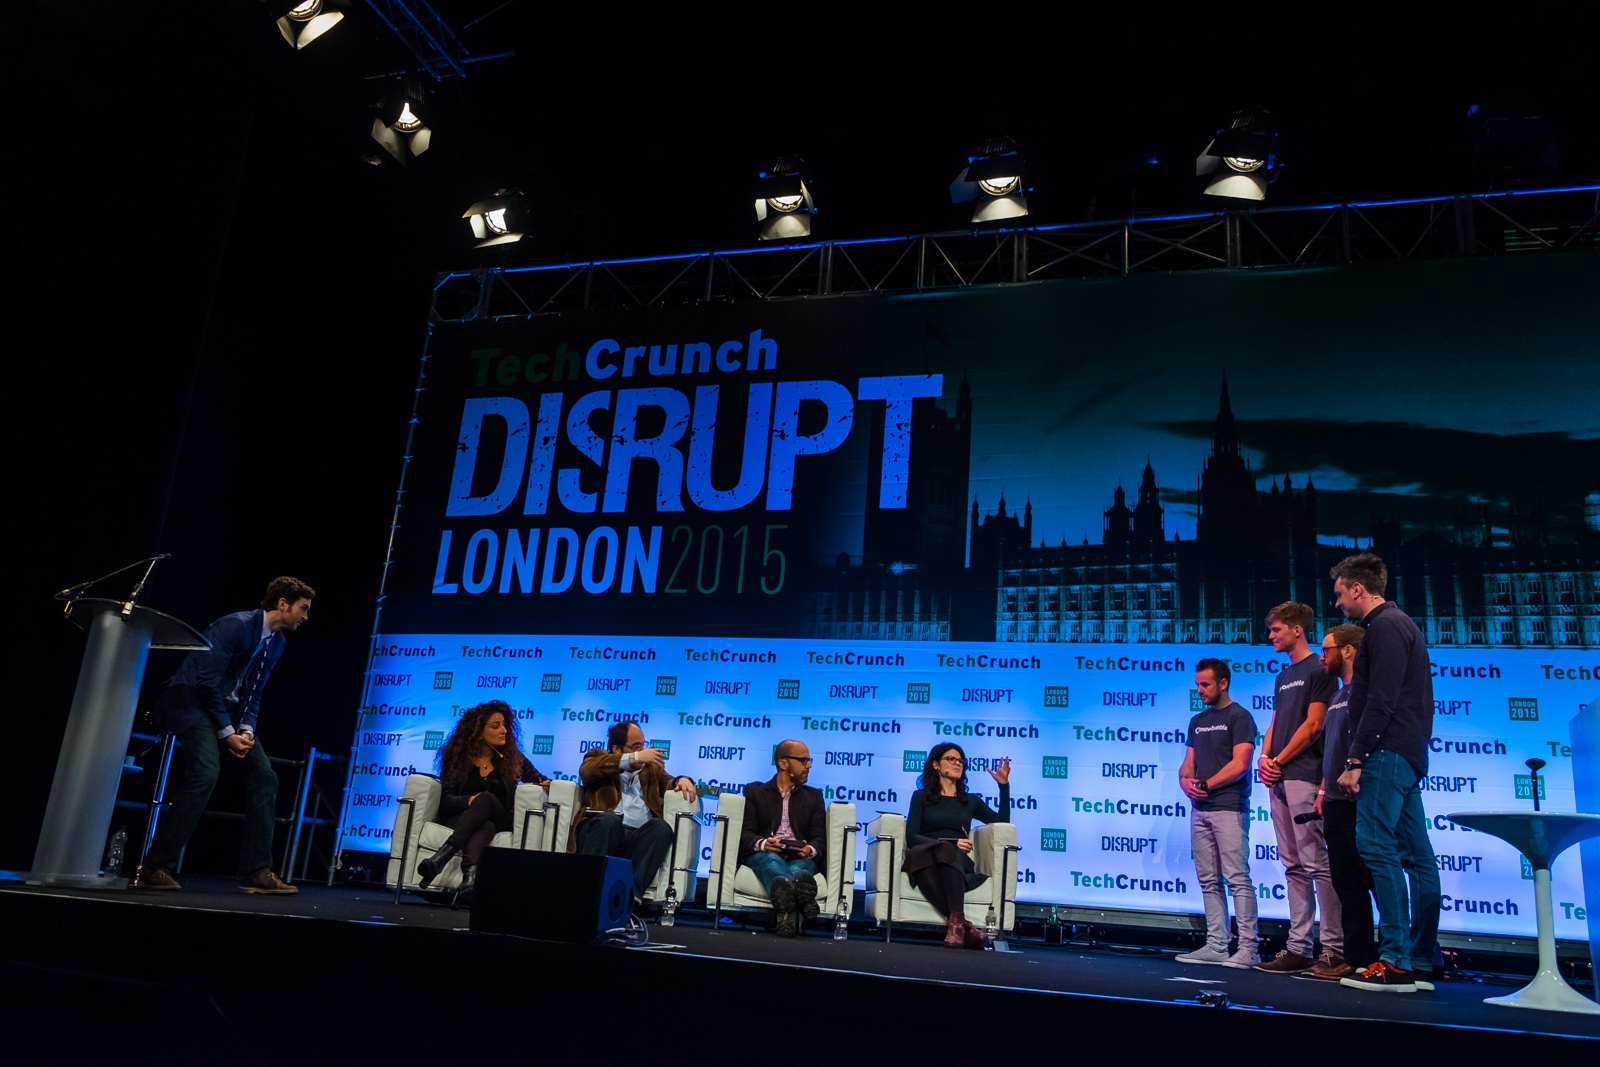 TechCrunch Disrupt London 2015. Image ©Dan Taylor/Heisenberg Media. For bookings contact - dan@heisenbergmedia.com or +447821755904